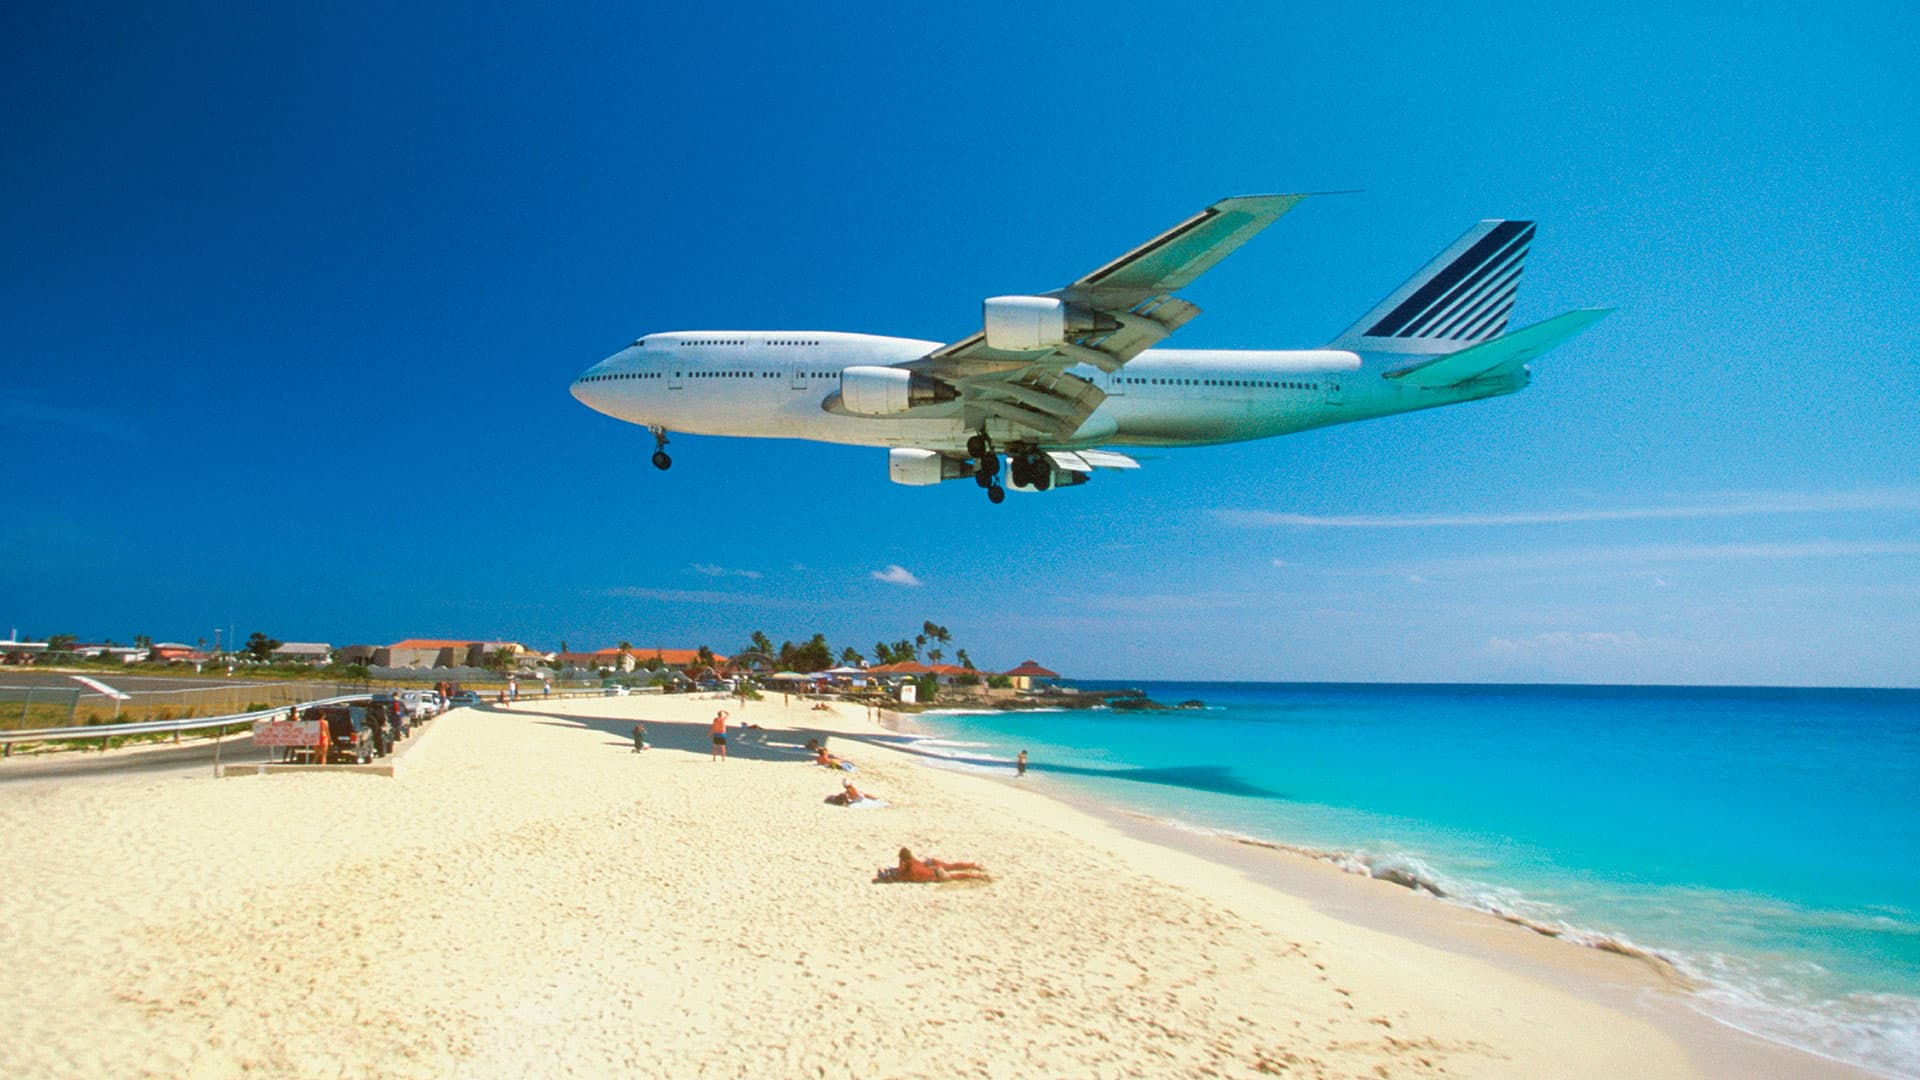 St. Maarten: The Friendly Island